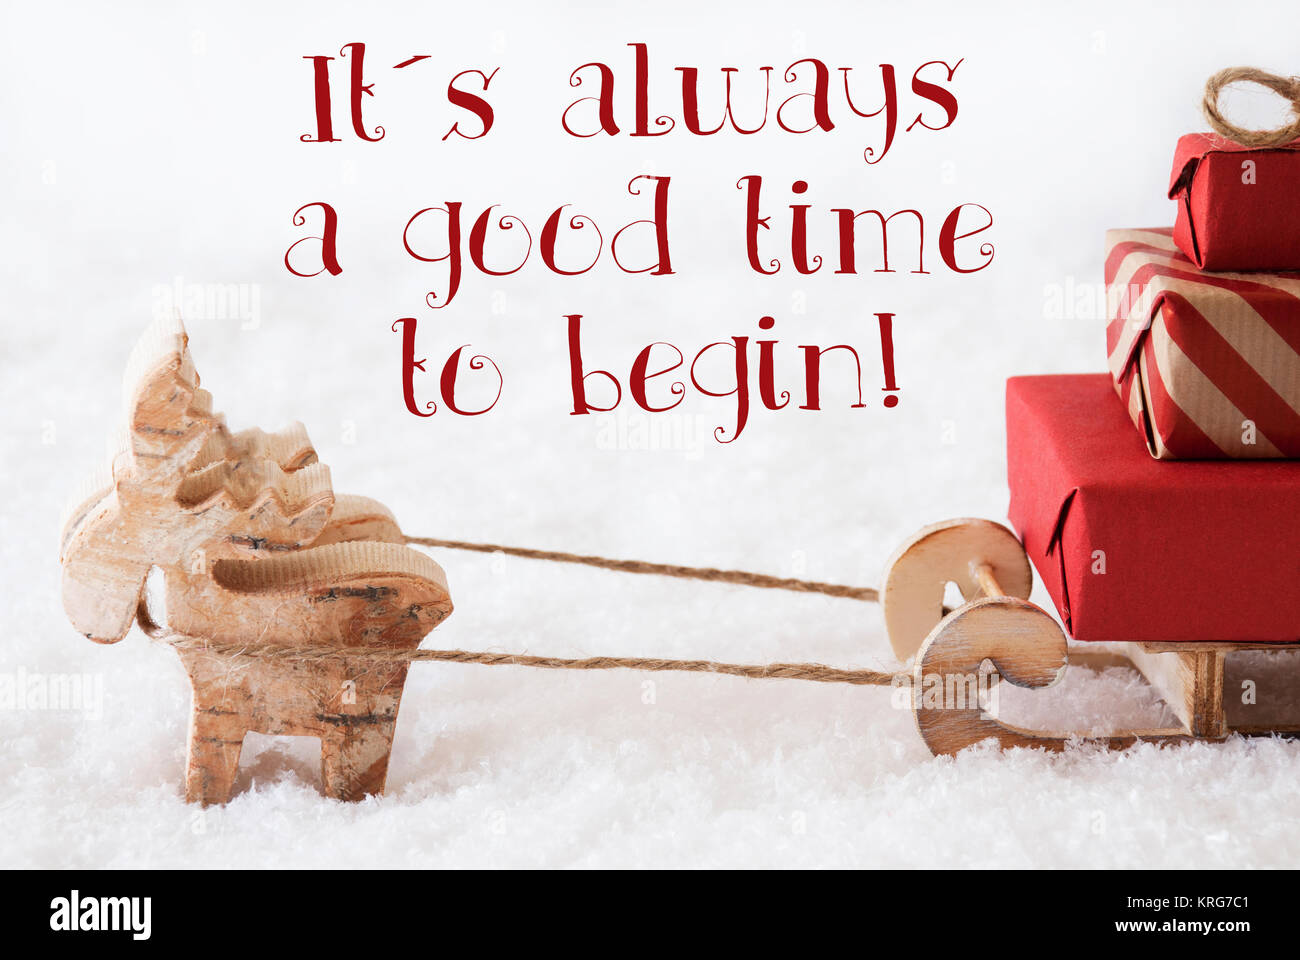 Moose is drawing a sled with red gifts or presents in snow moose is drawing a sled with red gifts or presents in snow christmas card for seasons greetings english quote it is always a good time to begin m4hsunfo